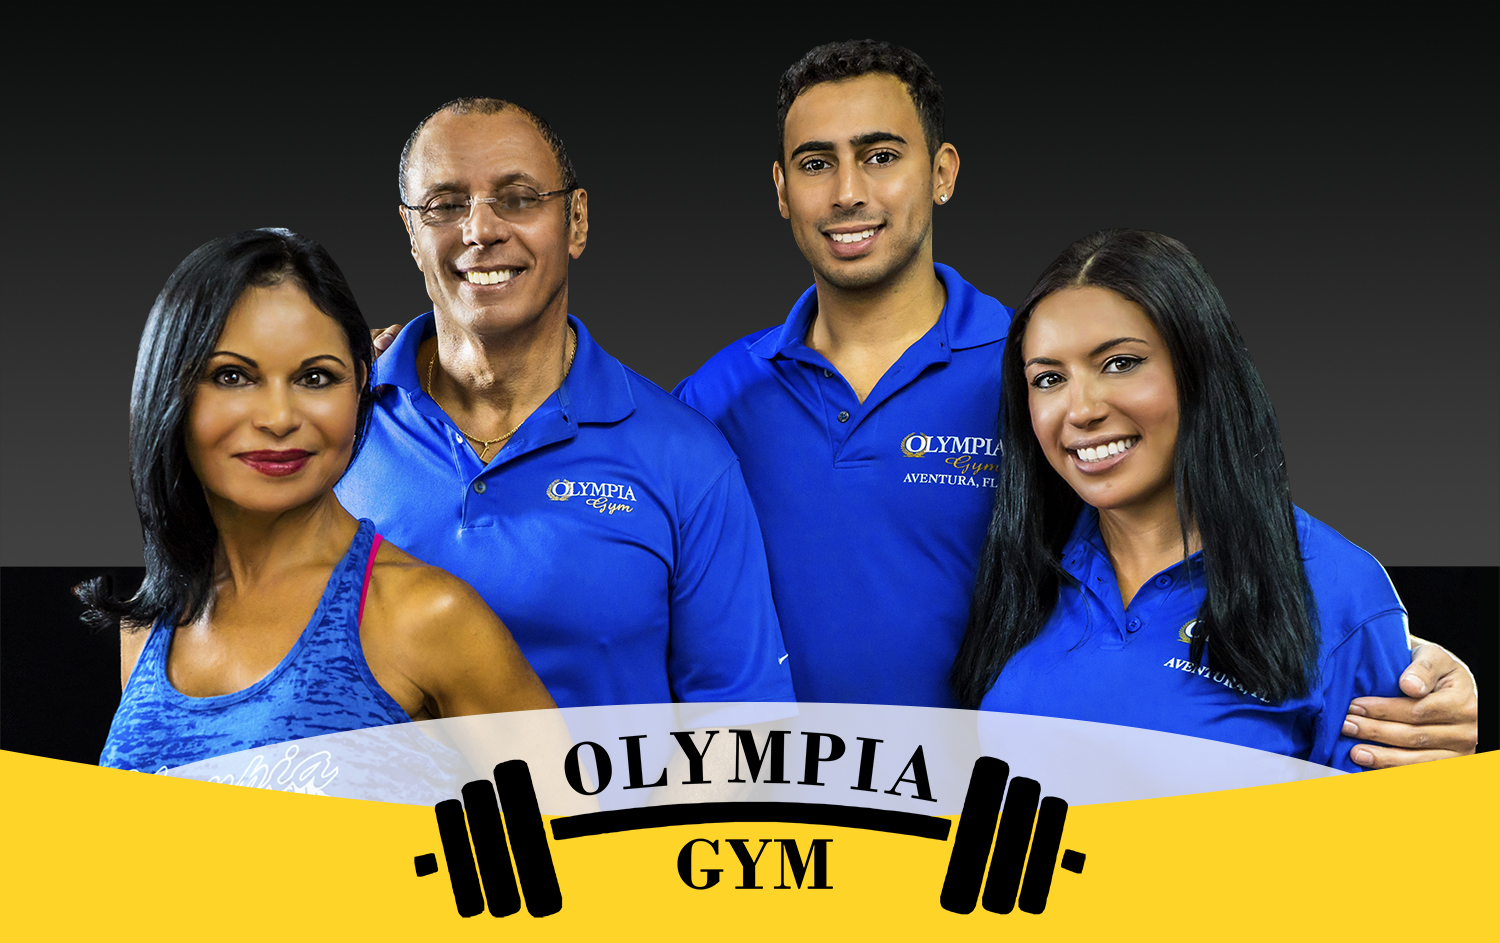 Olympia Gym is Open